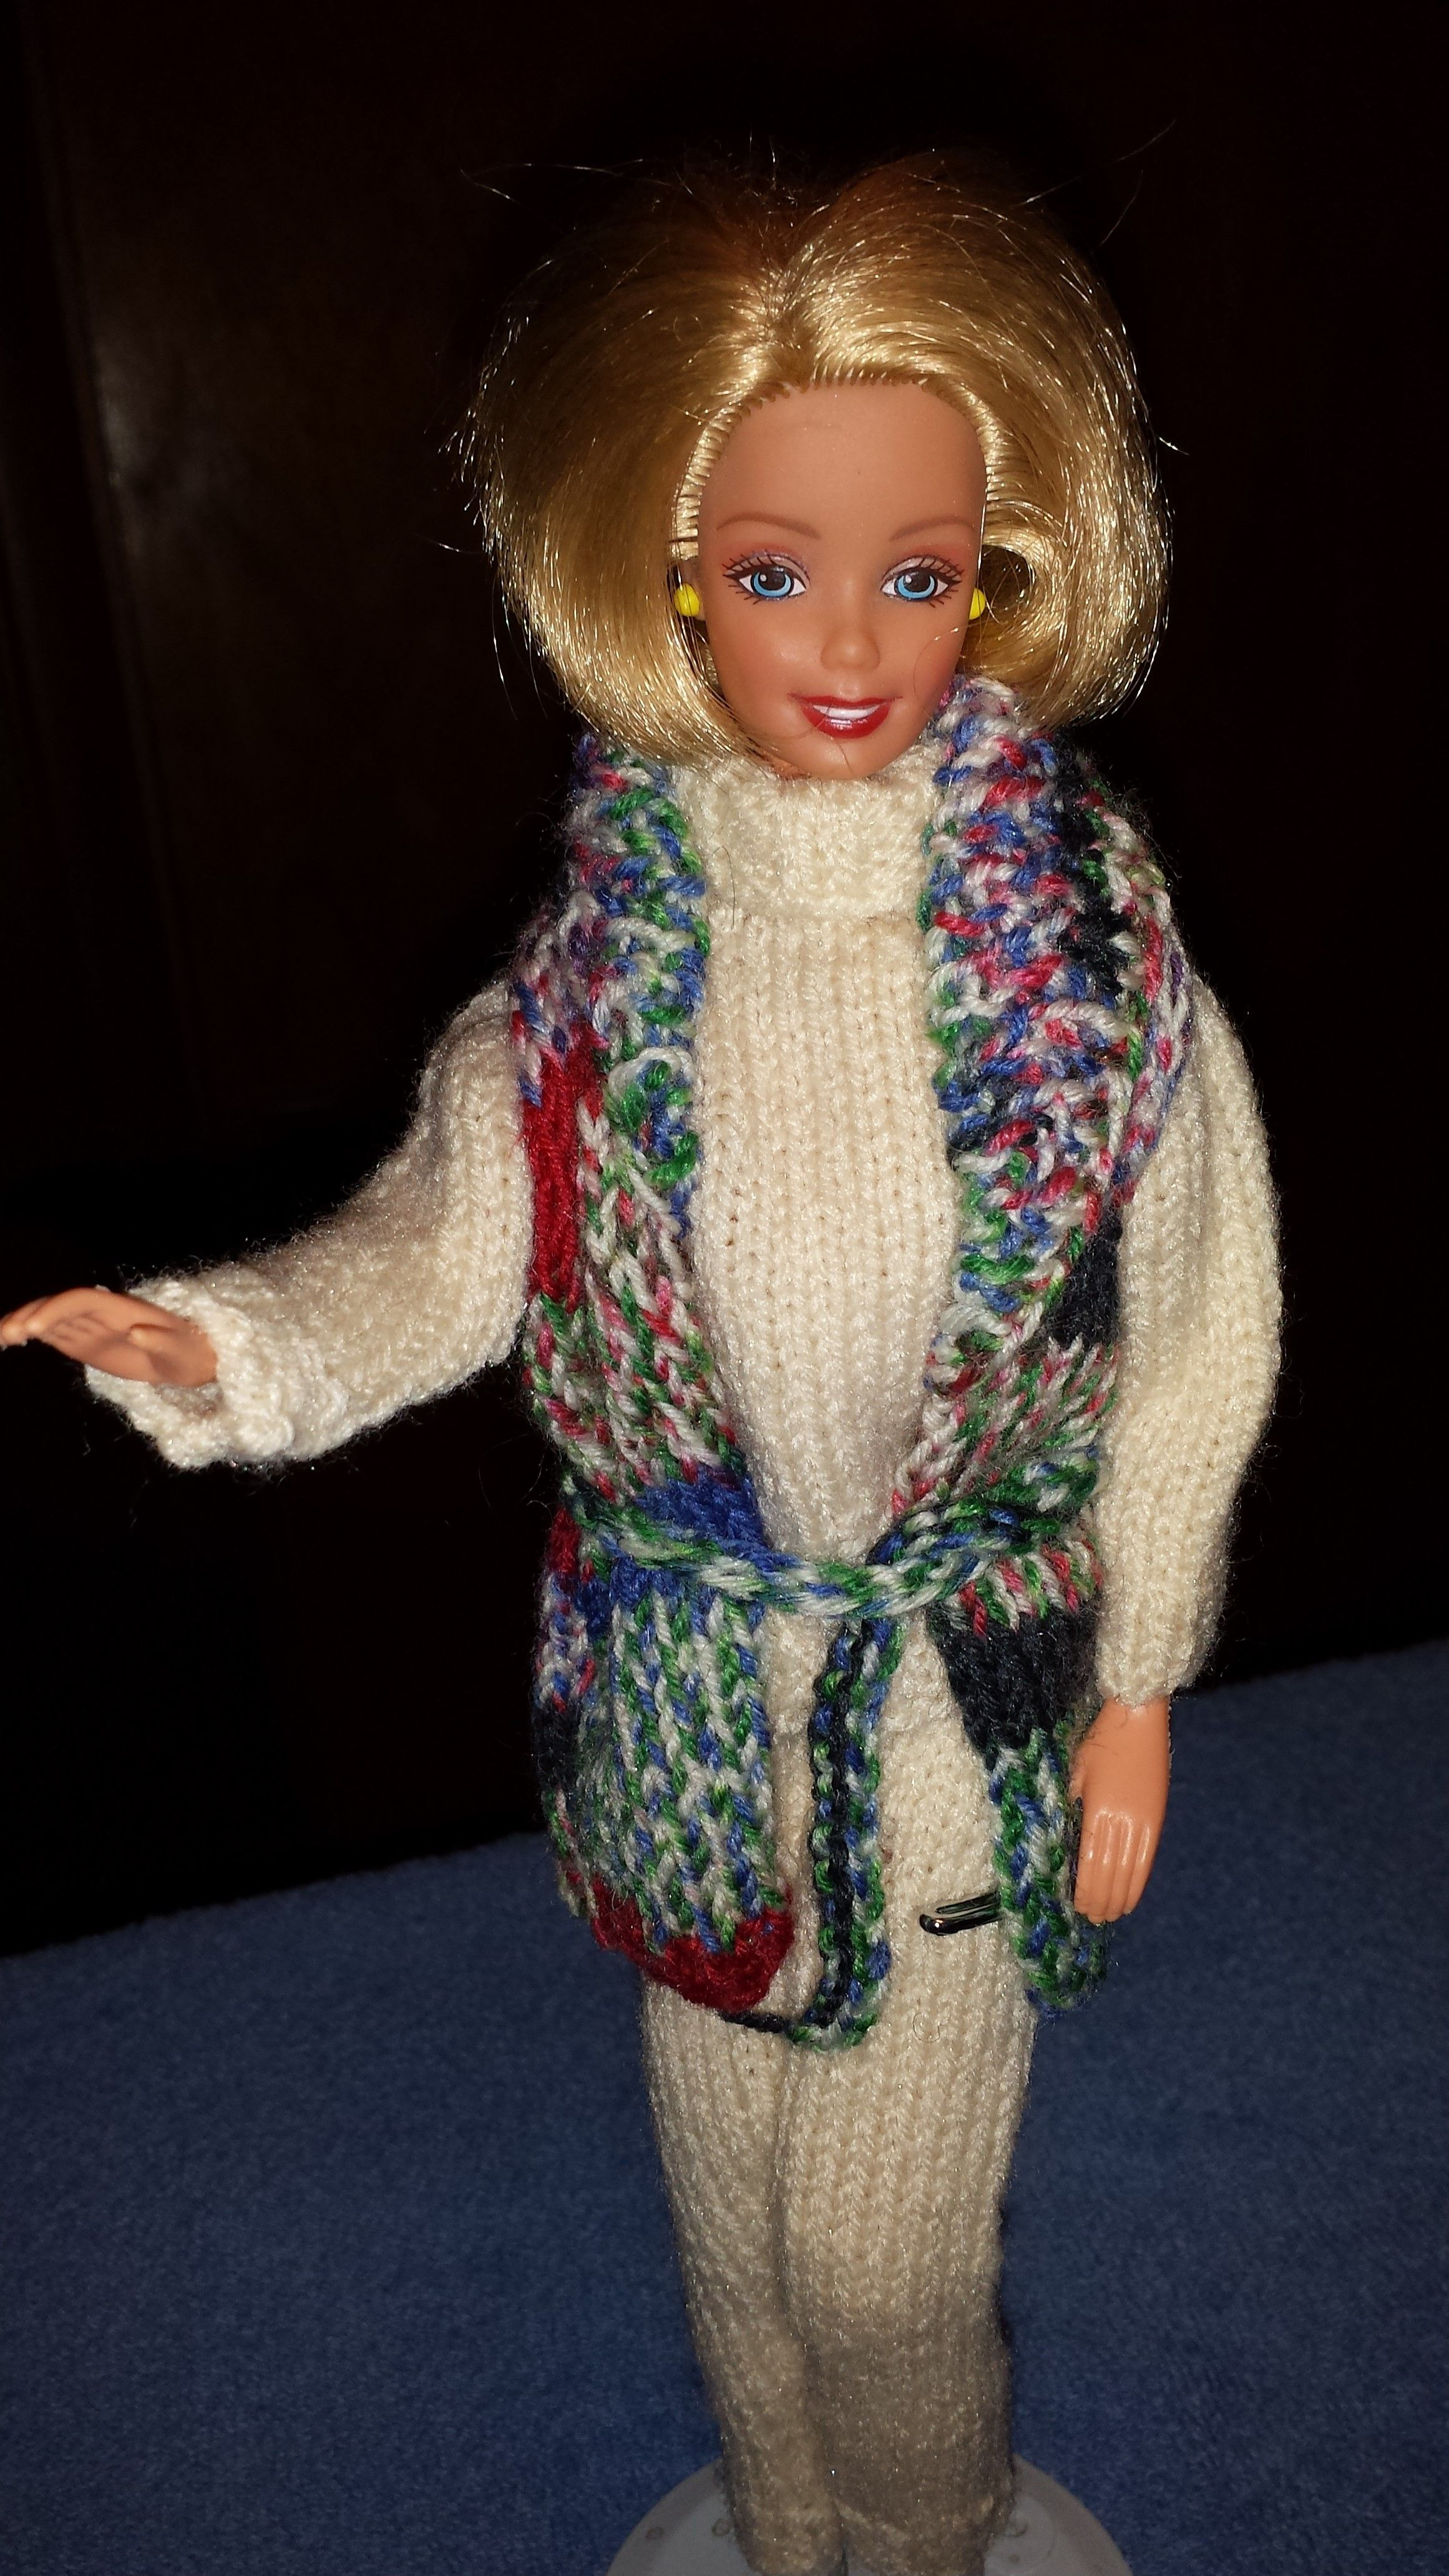 Barbie in yarn, knit patterns re-adjusted to suit the yarn involved ...